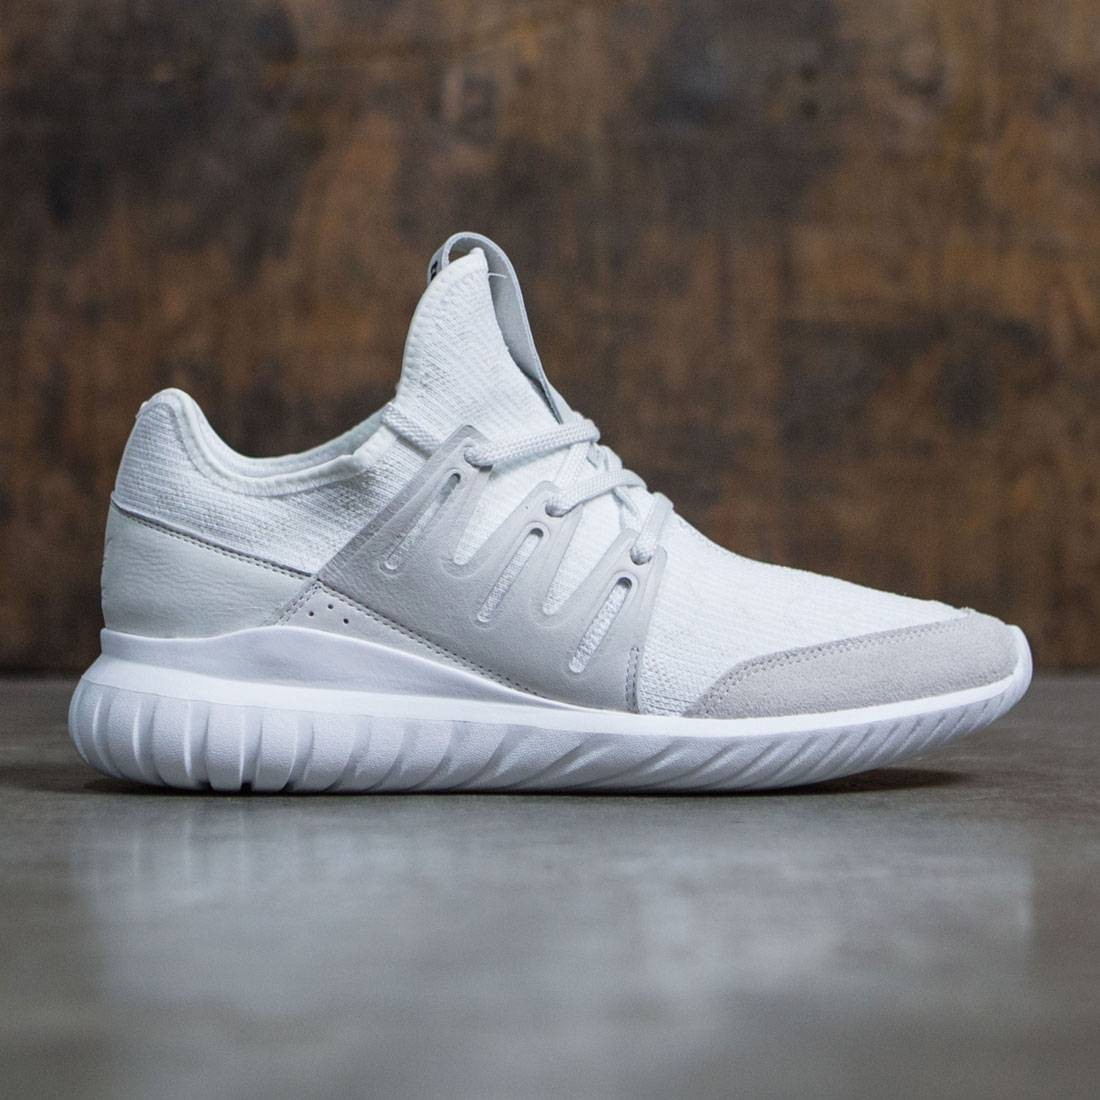 d0fad0d28cd Adidas Men Tubular Radial Primeknit white vintage white footwear white core  black